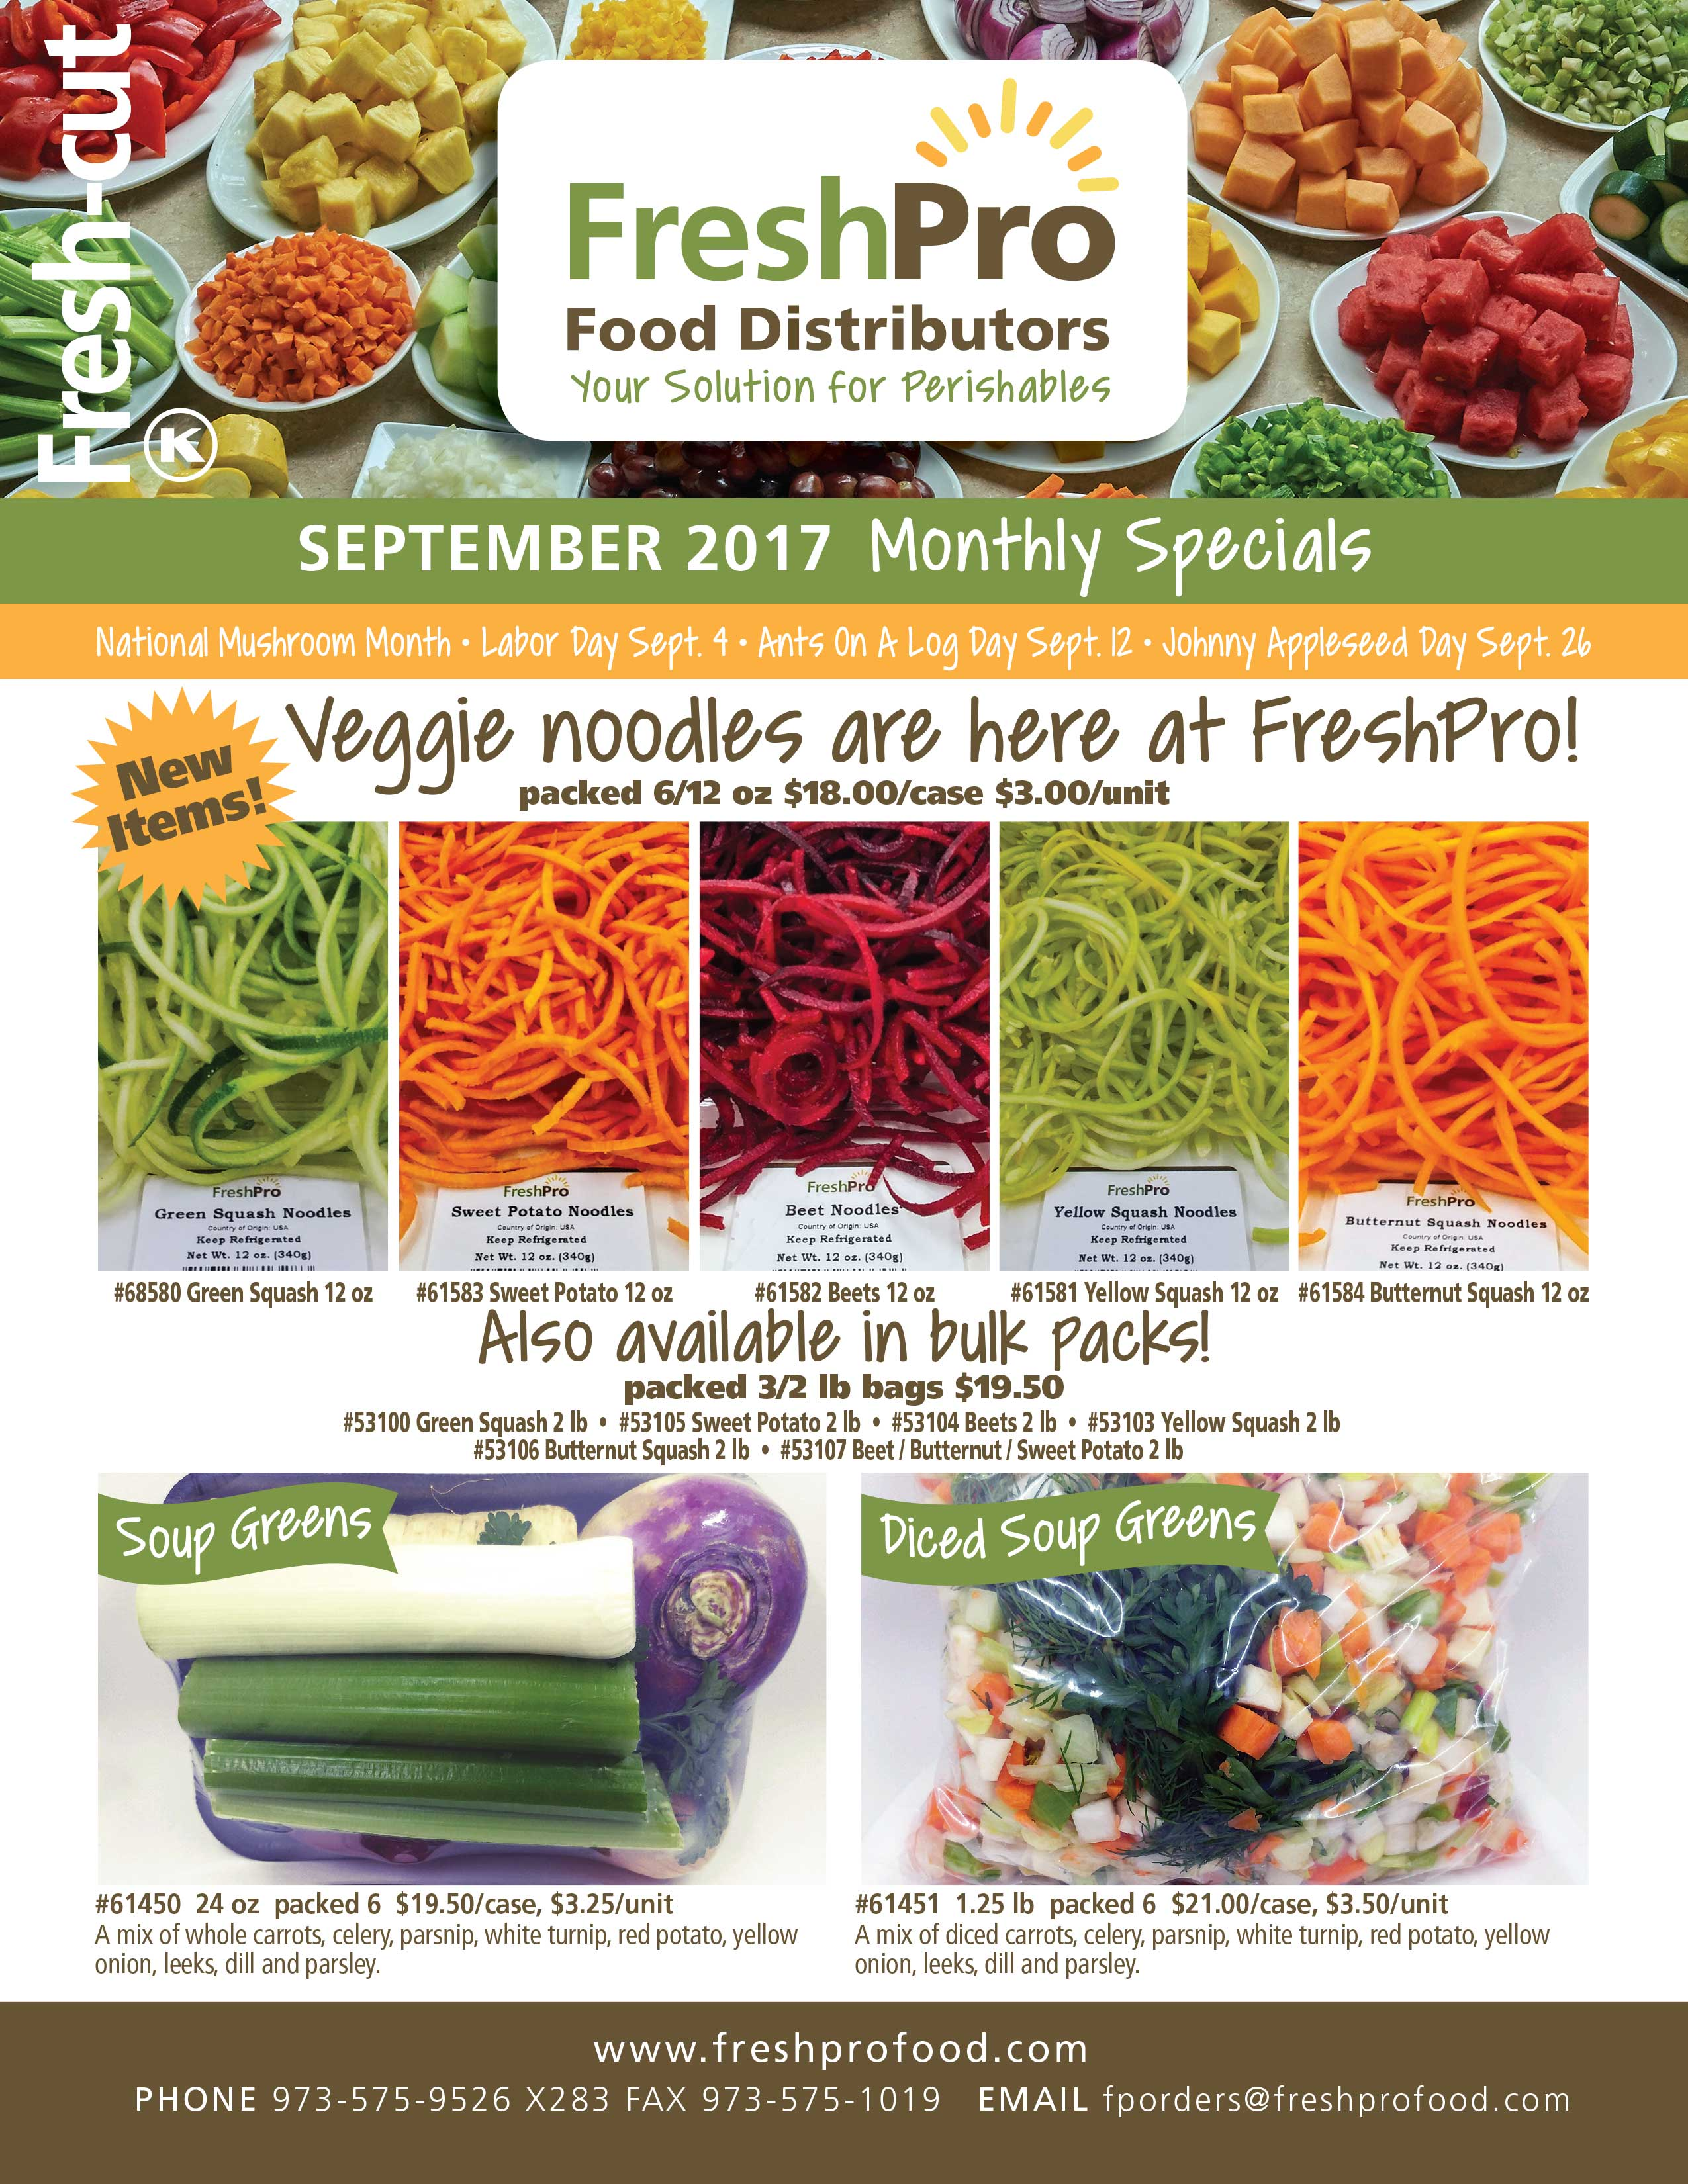 FreshPro Monthly Fresh Cut Specials September 2017